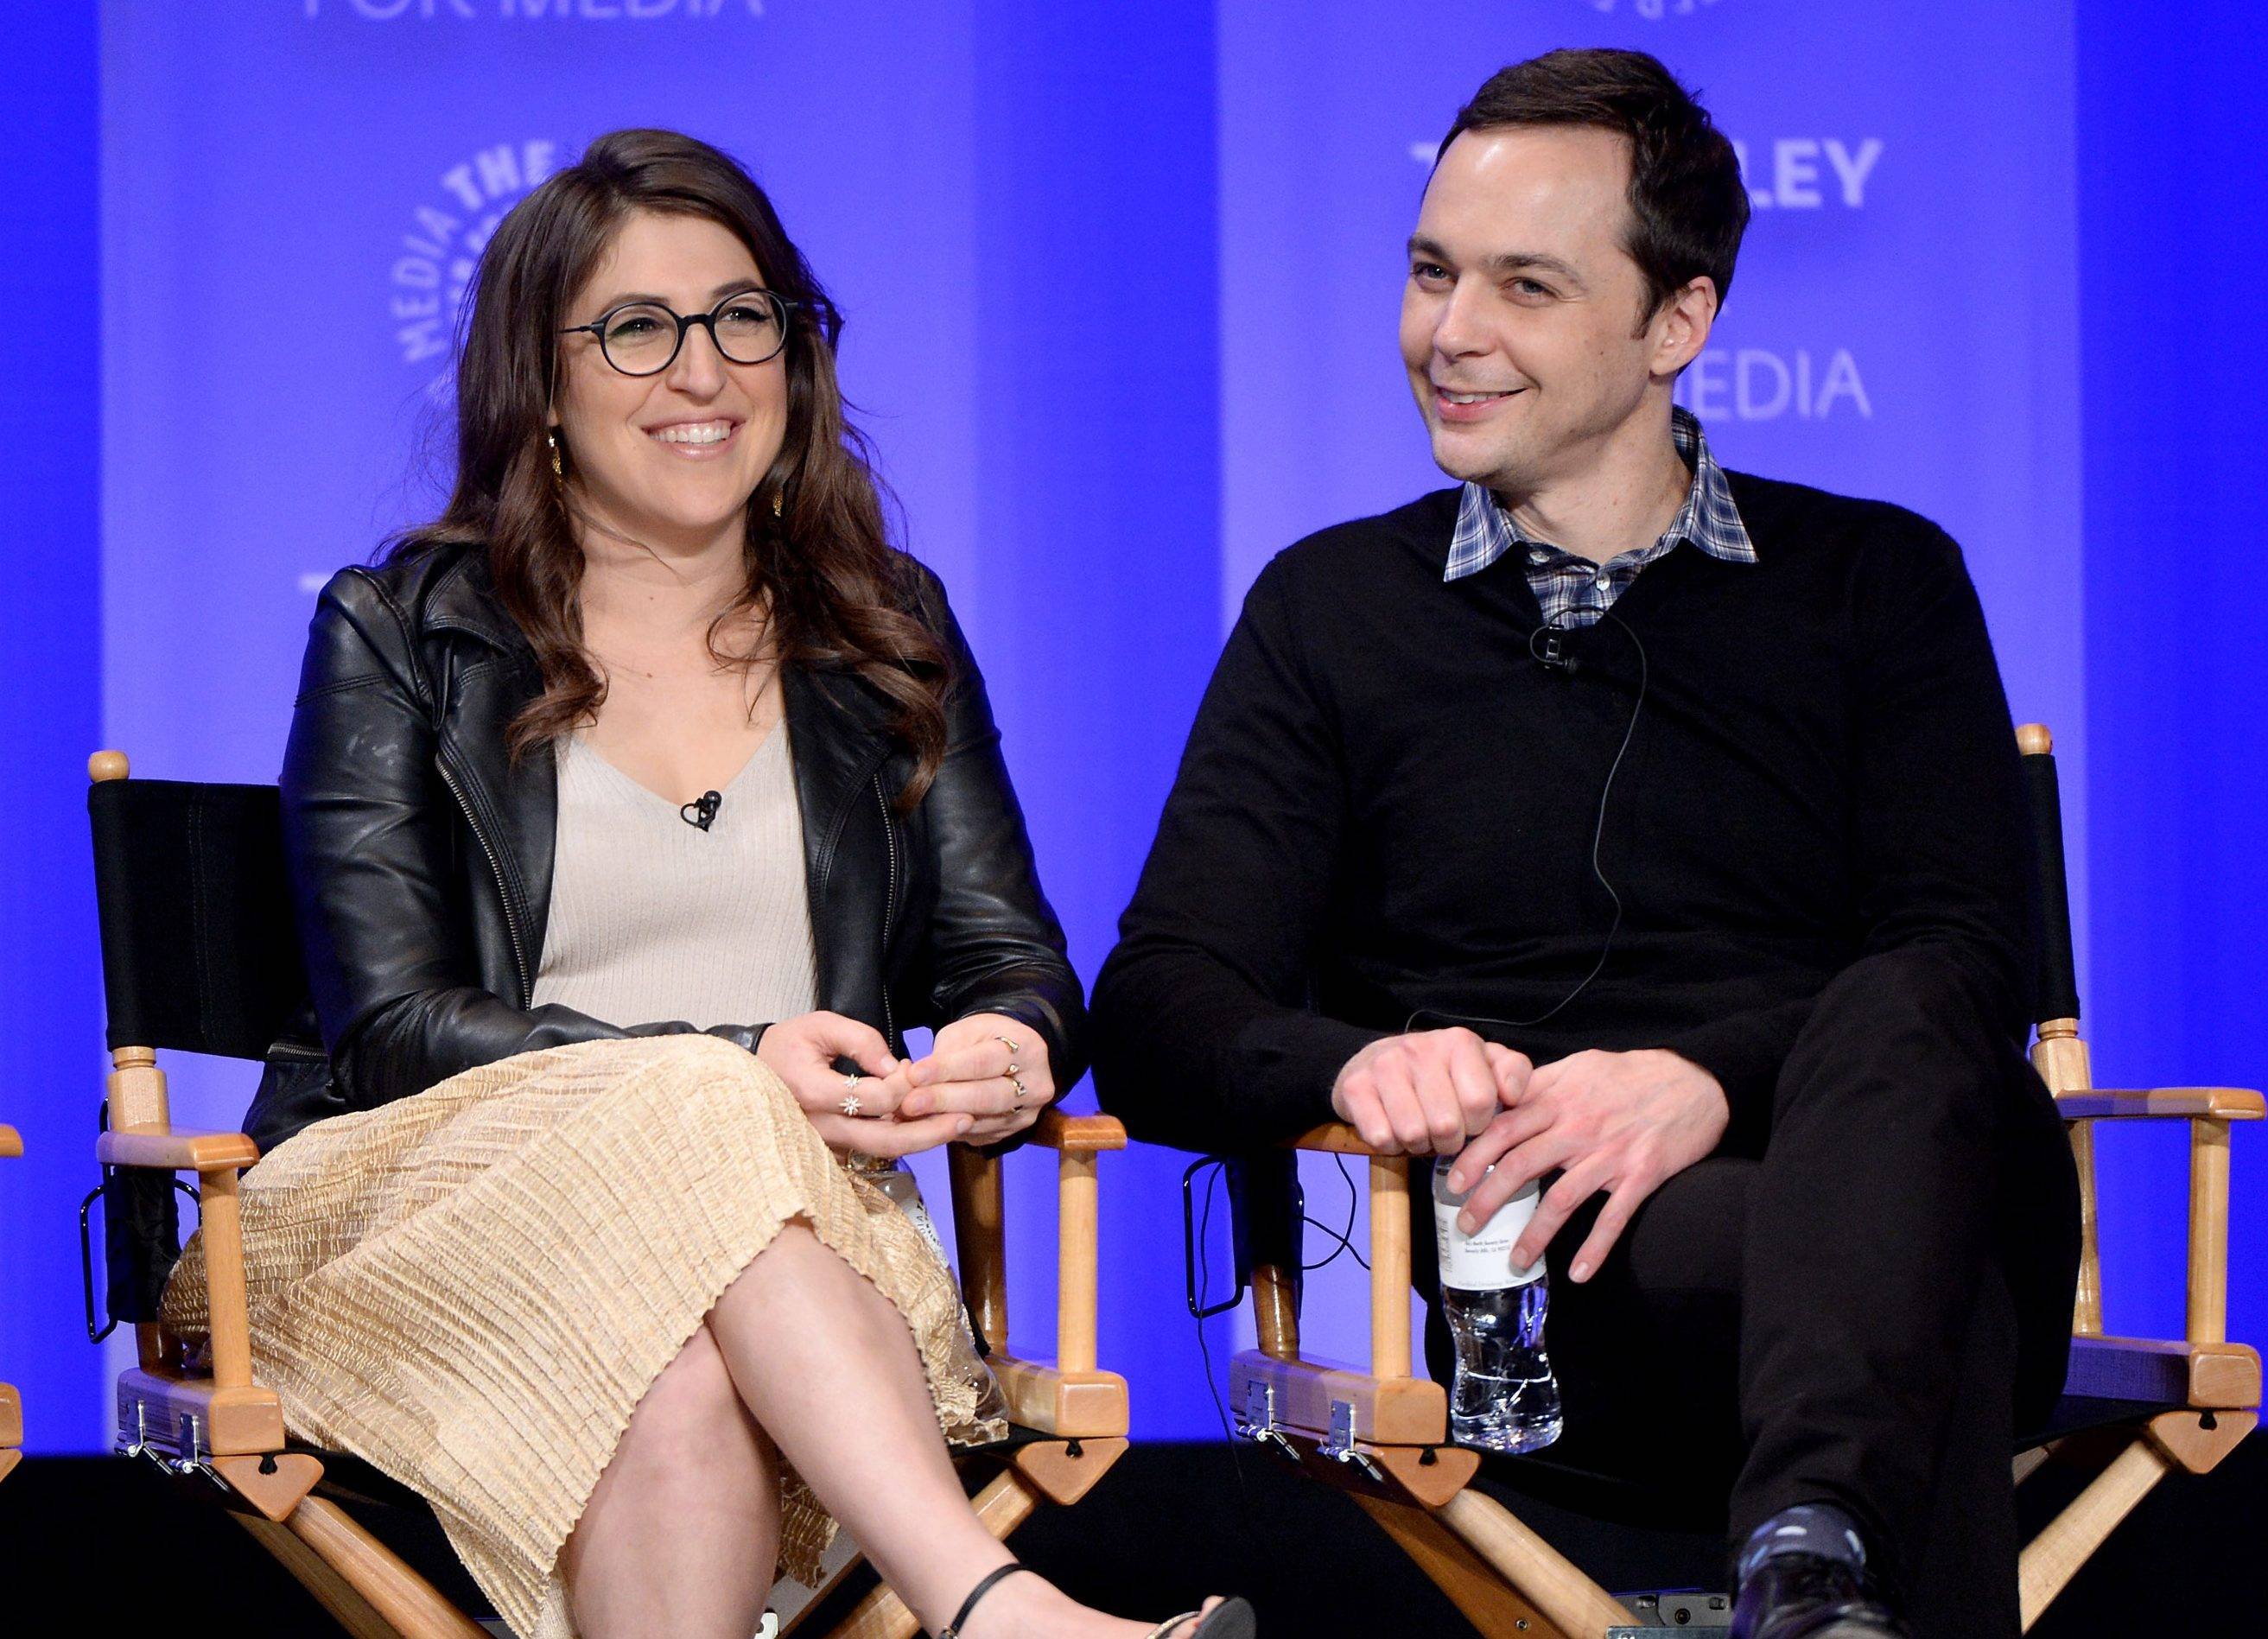 Why Mayim Bialik didn't watch a single episode of The Big Bang Theory?